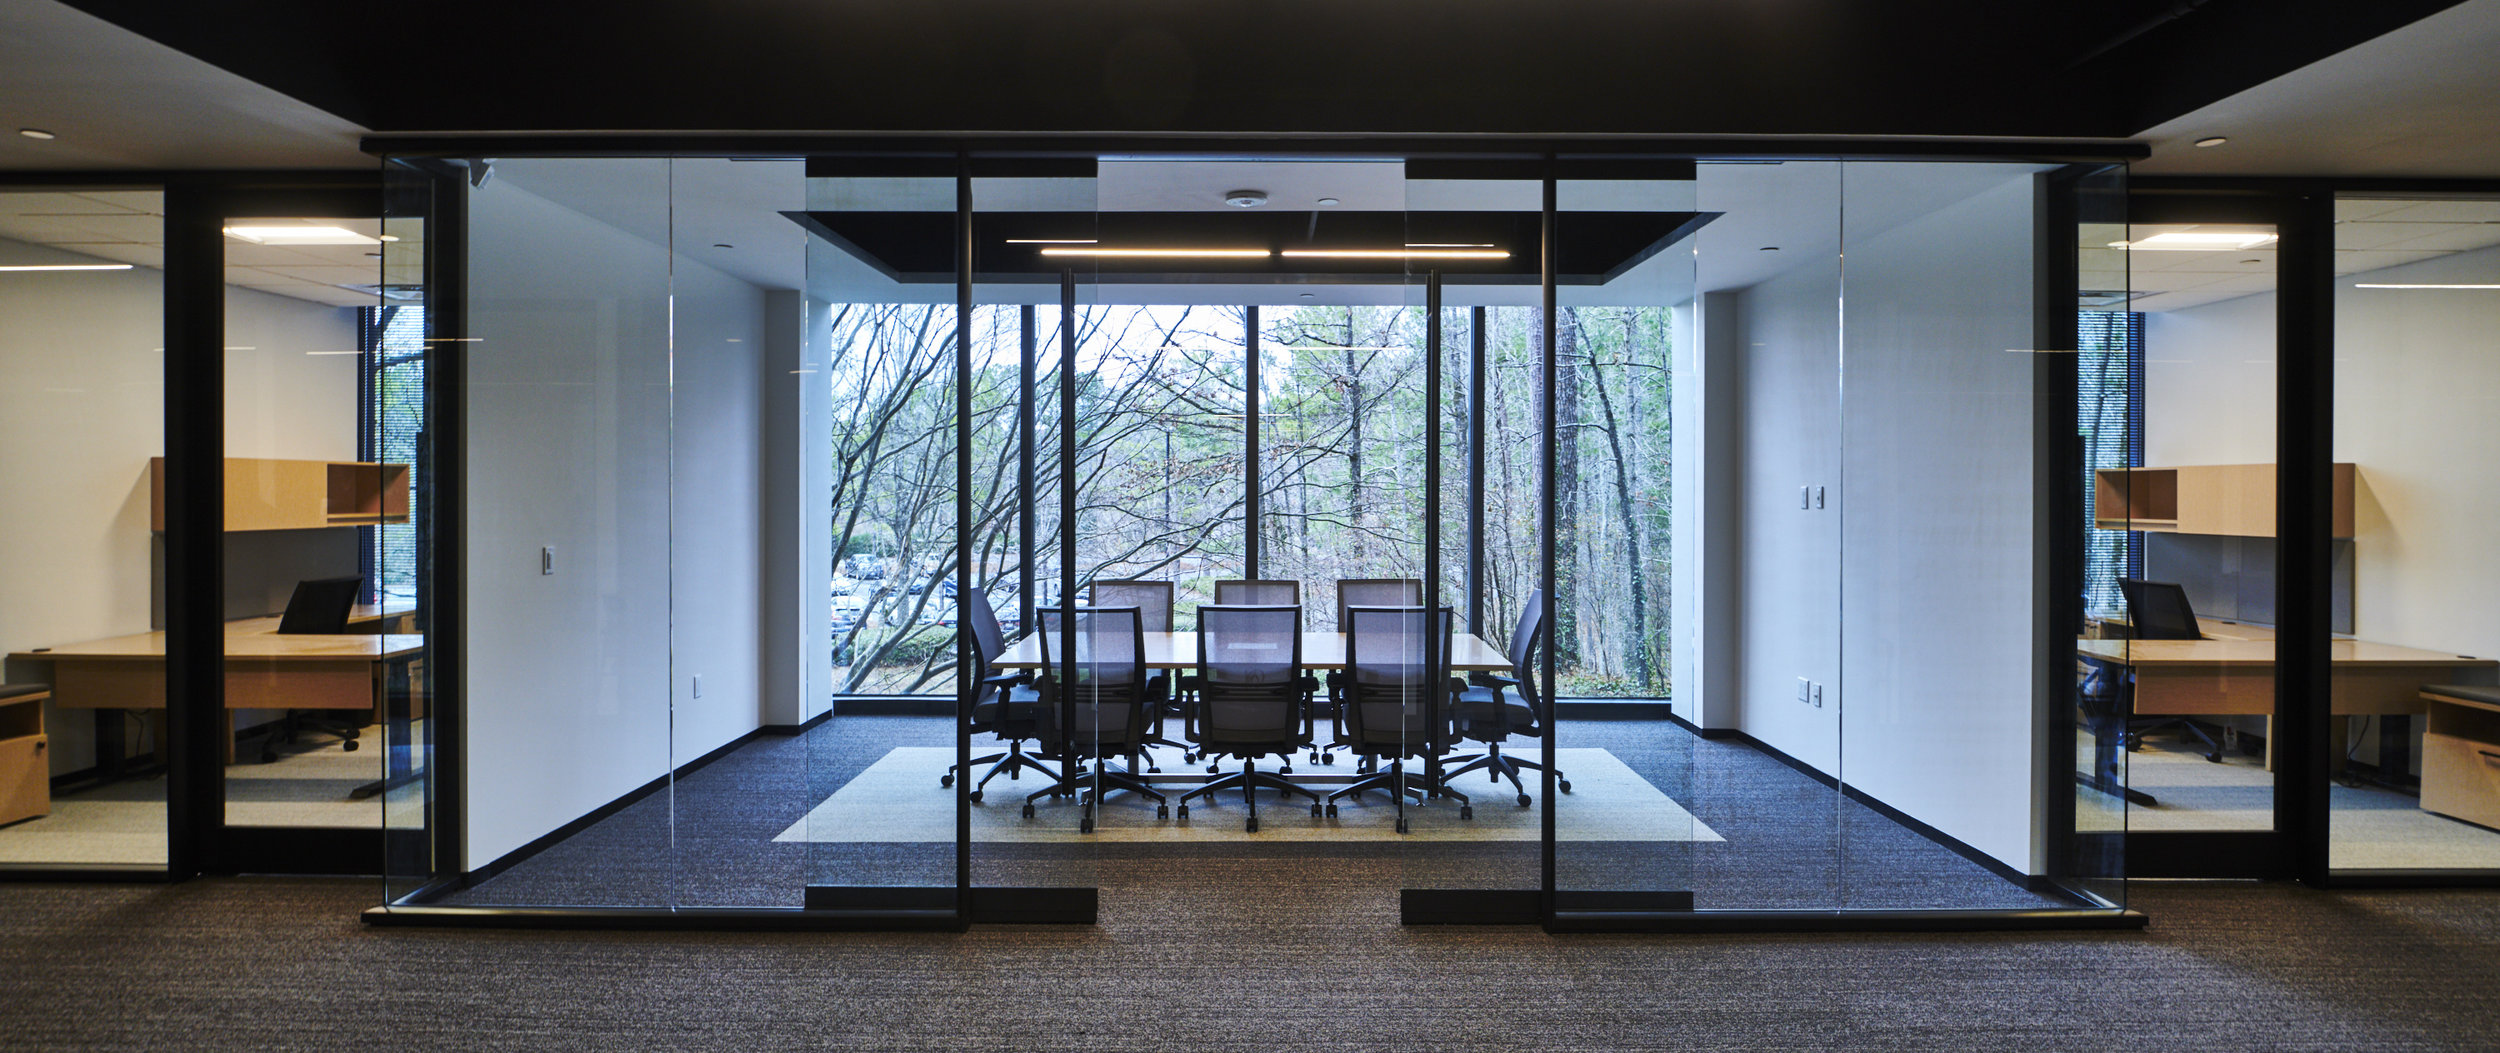 Strong axial views through the building of the surrounding forest are found throughout the space providing a connection to the what drives the company.